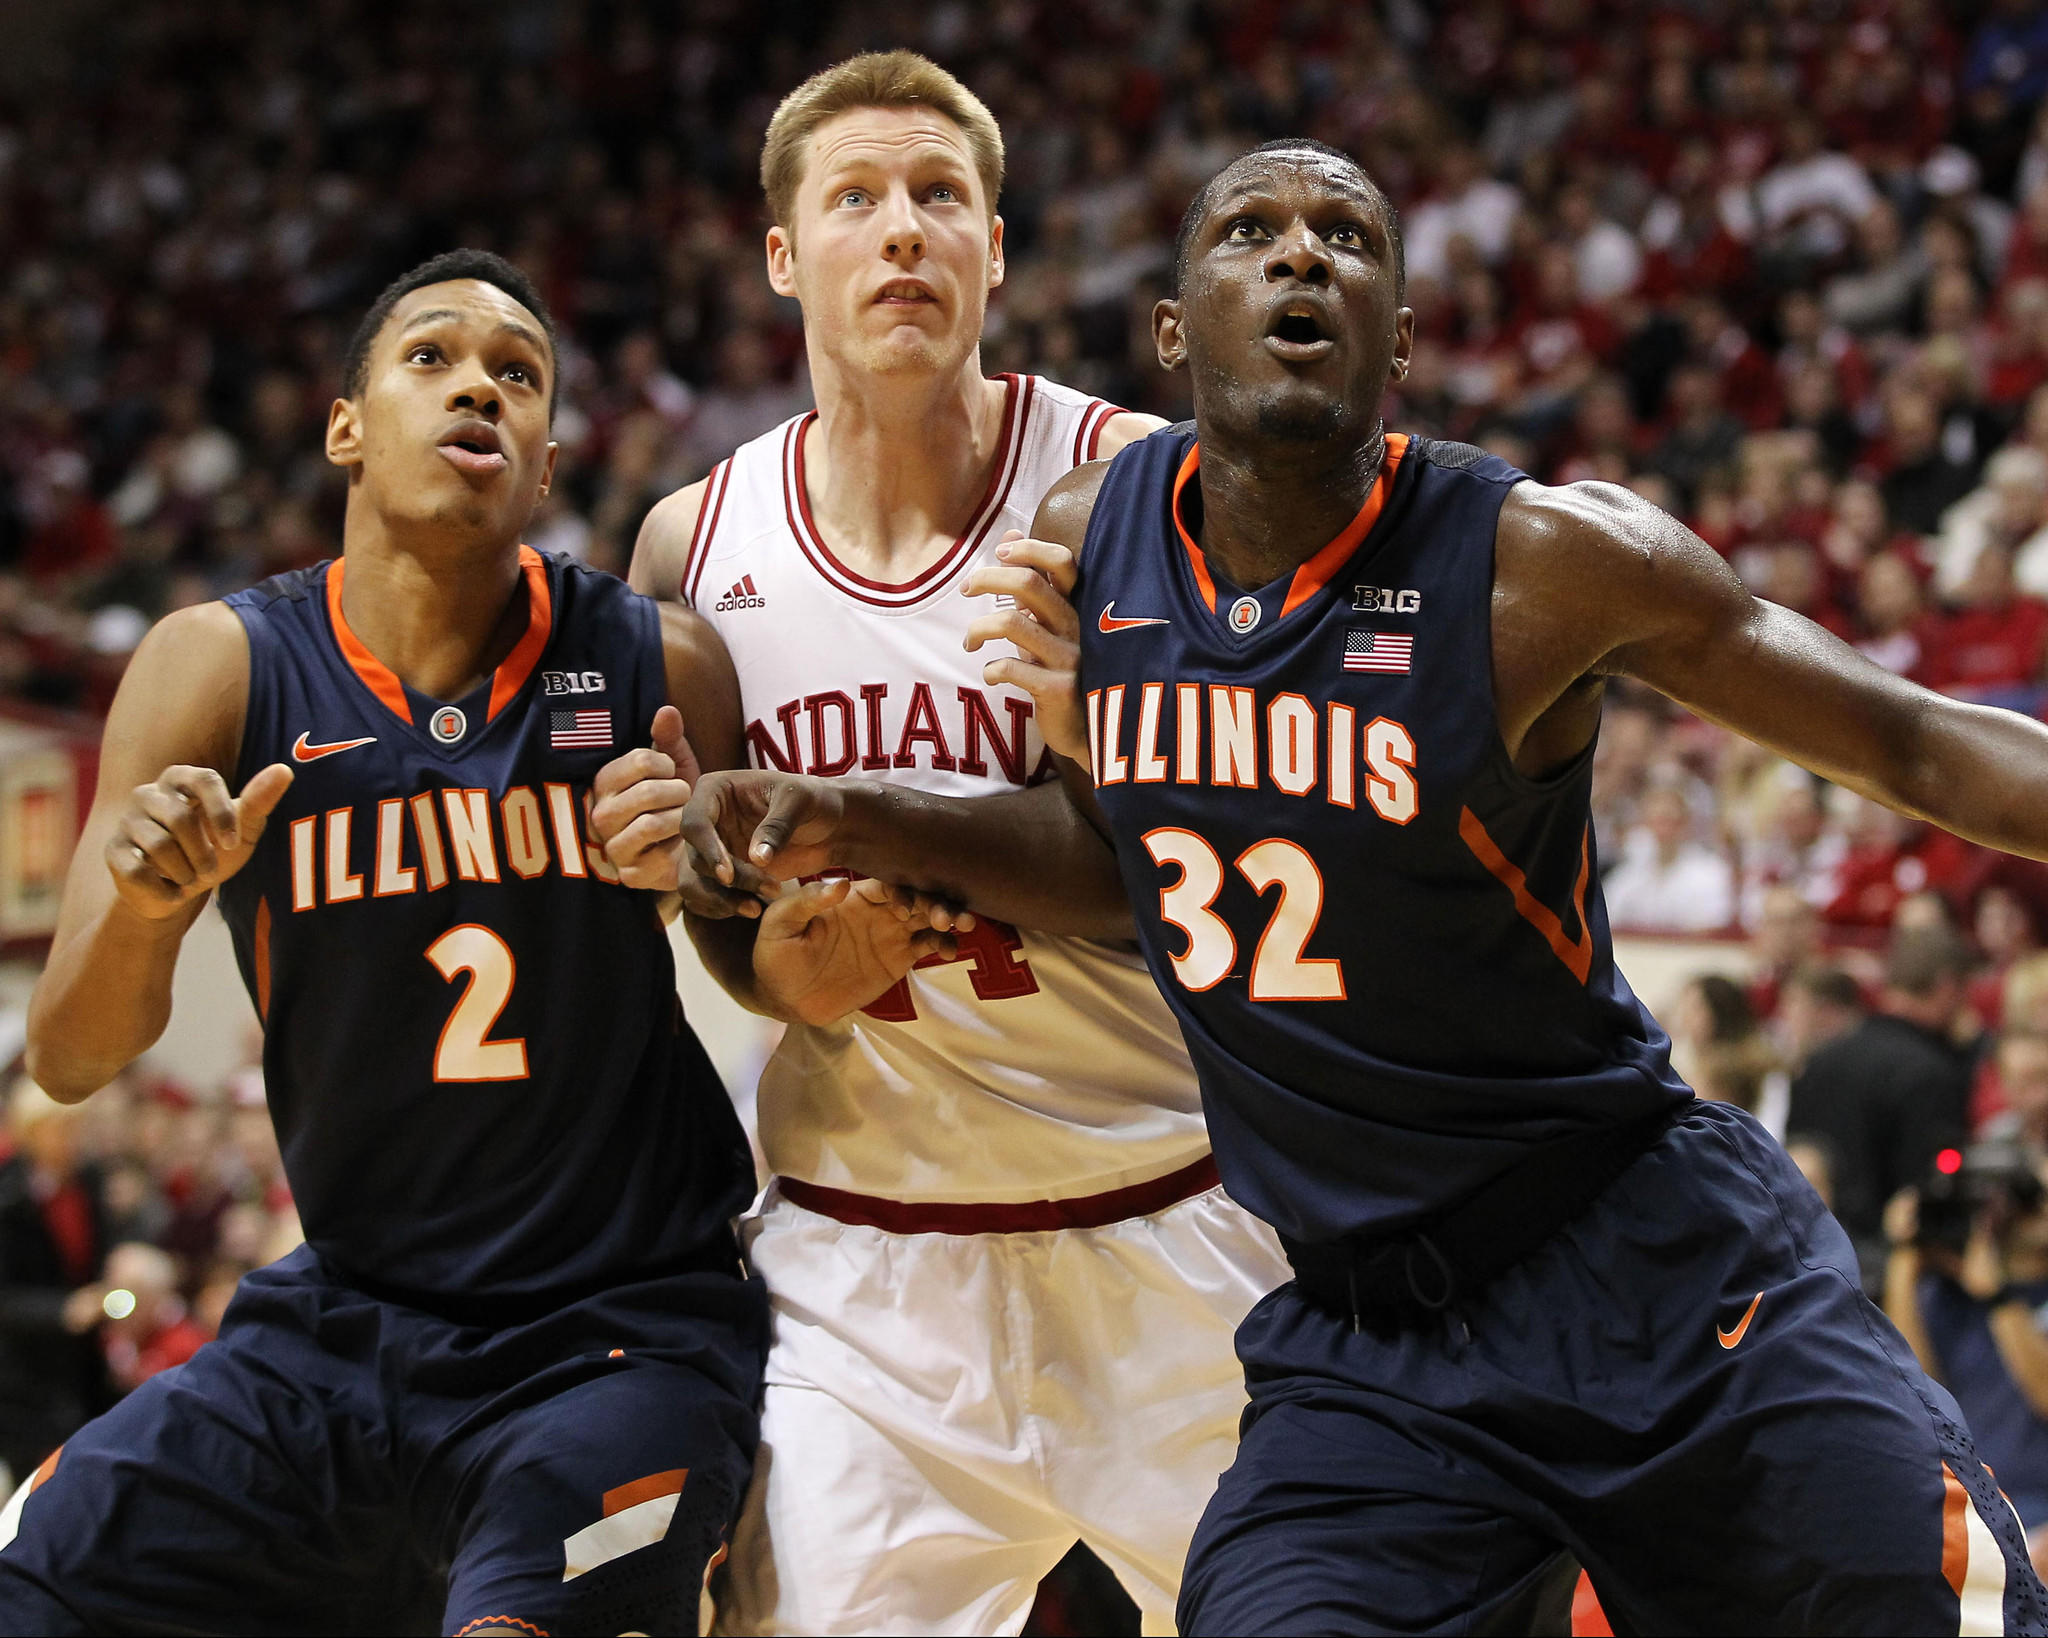 Illinois Fighting Illini guard Joseph Bertrand (2), Indiana Hoosiers forward Jeff Howard (24), and Illini forward/center Nnanna Egwu (32) battle for position during the first half at Assembly Hall.